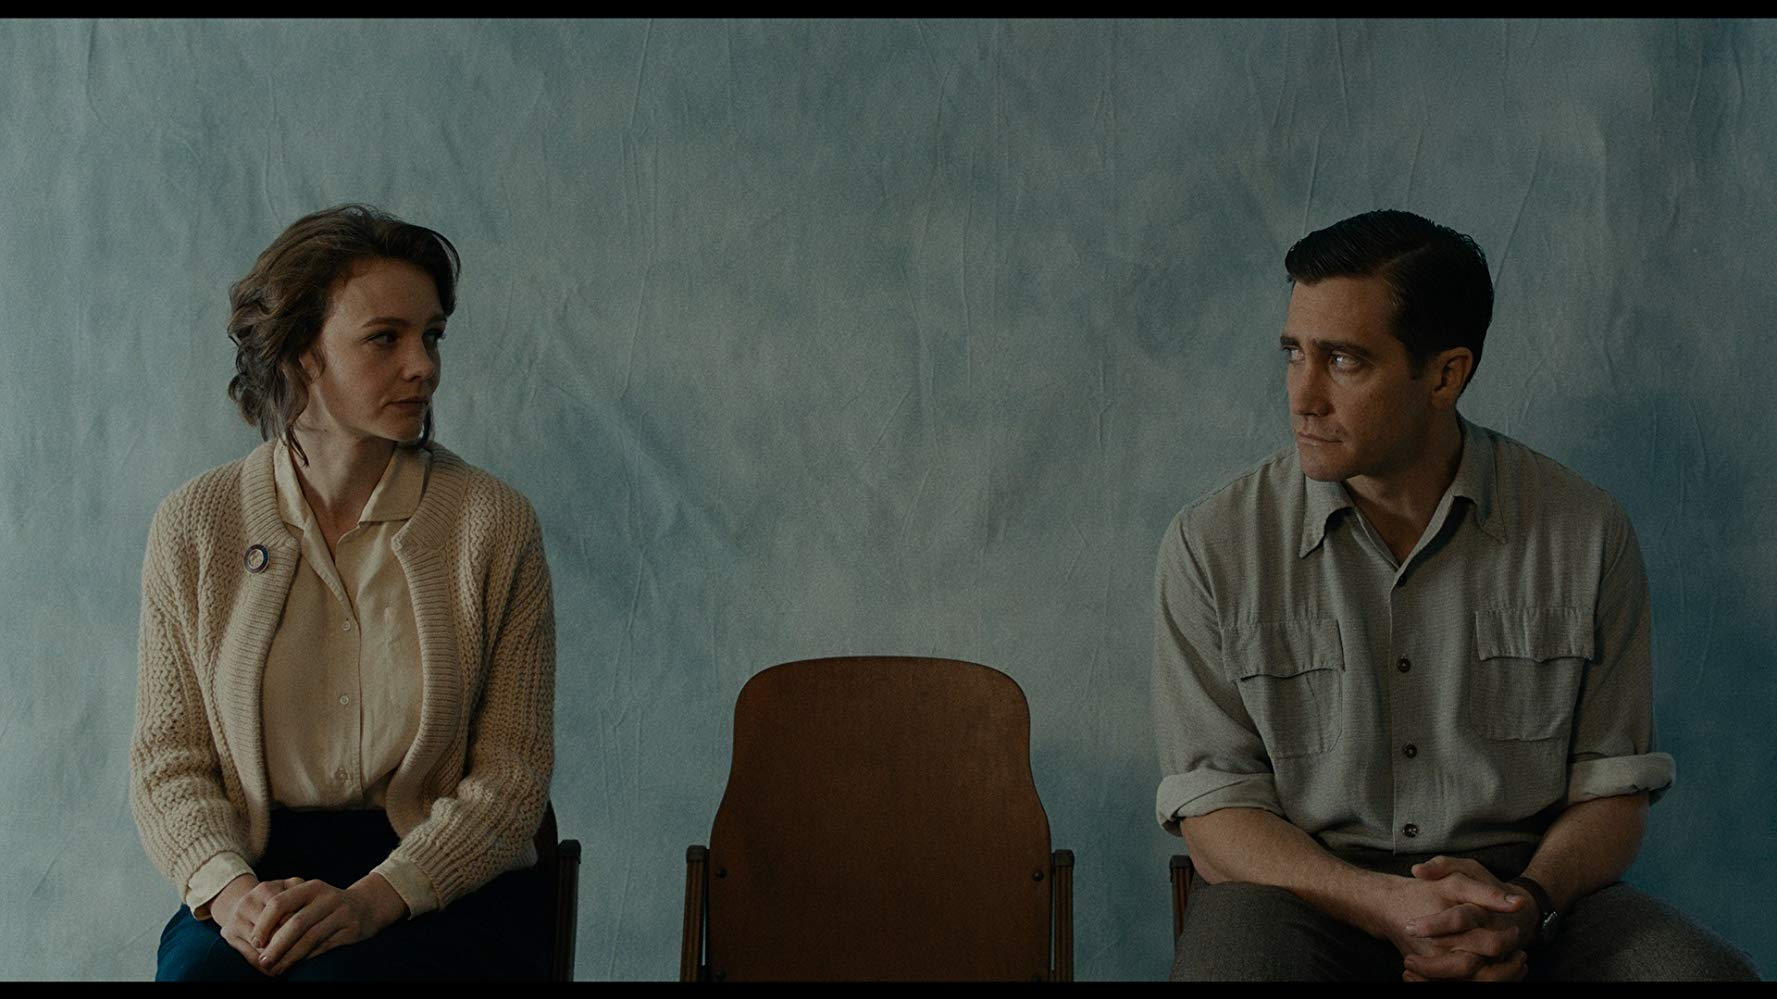 Starring Carey Mulligan, JakeGyllenhaalDir: Paul Dano (USA,2018, 105mins) Fourteen-year-old Joe is the onlychild of Jeanette and Jerry,a housewife and a golf pro,in a small town in 1960sMontana. Nearby, an uncontrolled forest fire rages close to the Canadianborder, and when Jerry loses his job, and his sense of purpose, he decides tojoin the cause of fighting the fire, leaving his wife and son to fend forthemselves. Suddenly forced into the role of an adult, Joe witnesses hismother's struggle as she tries to keep her head above water.(First Feature competition London FilmFestival 2018)